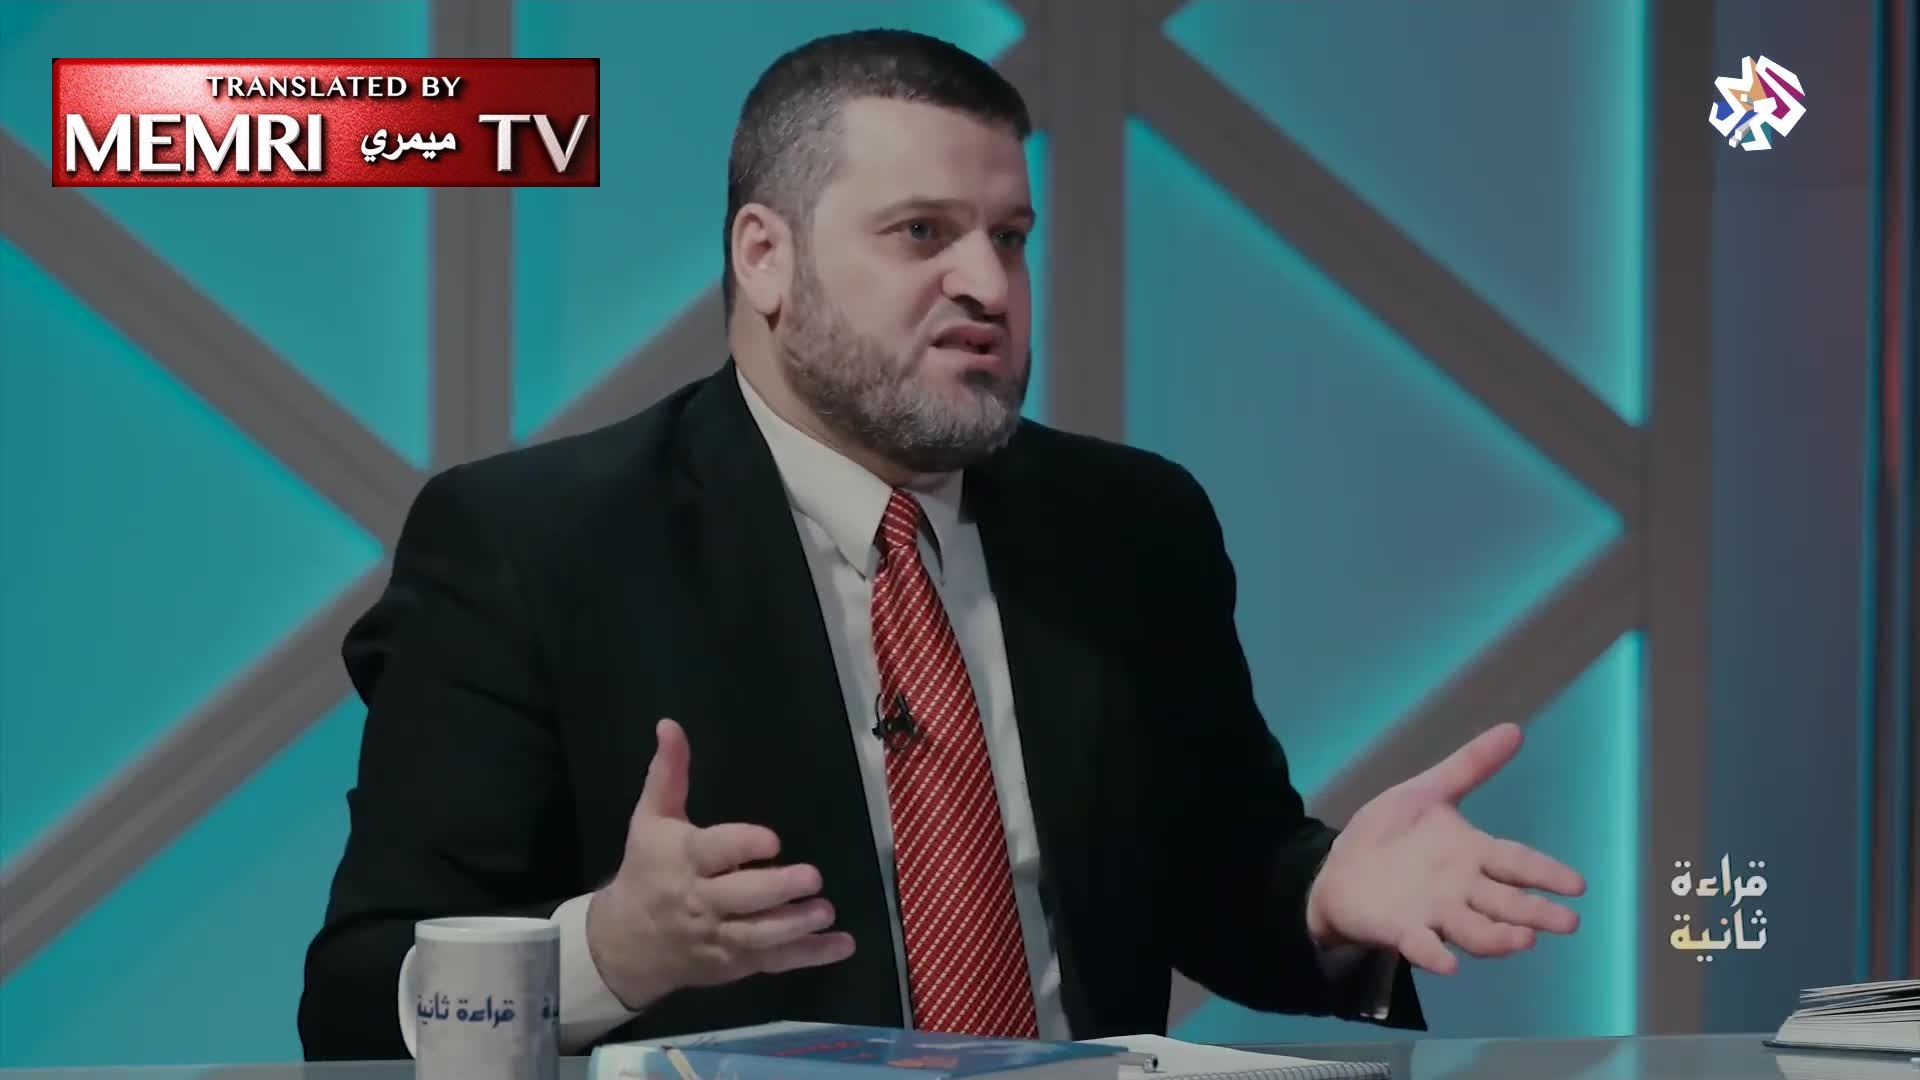 Lebanese Academic Dr. Khaled Abdul Fattah: Muslims Should Not Intermarry; We Don't Want to See Churches in the Squares of the Islamic State We Call for